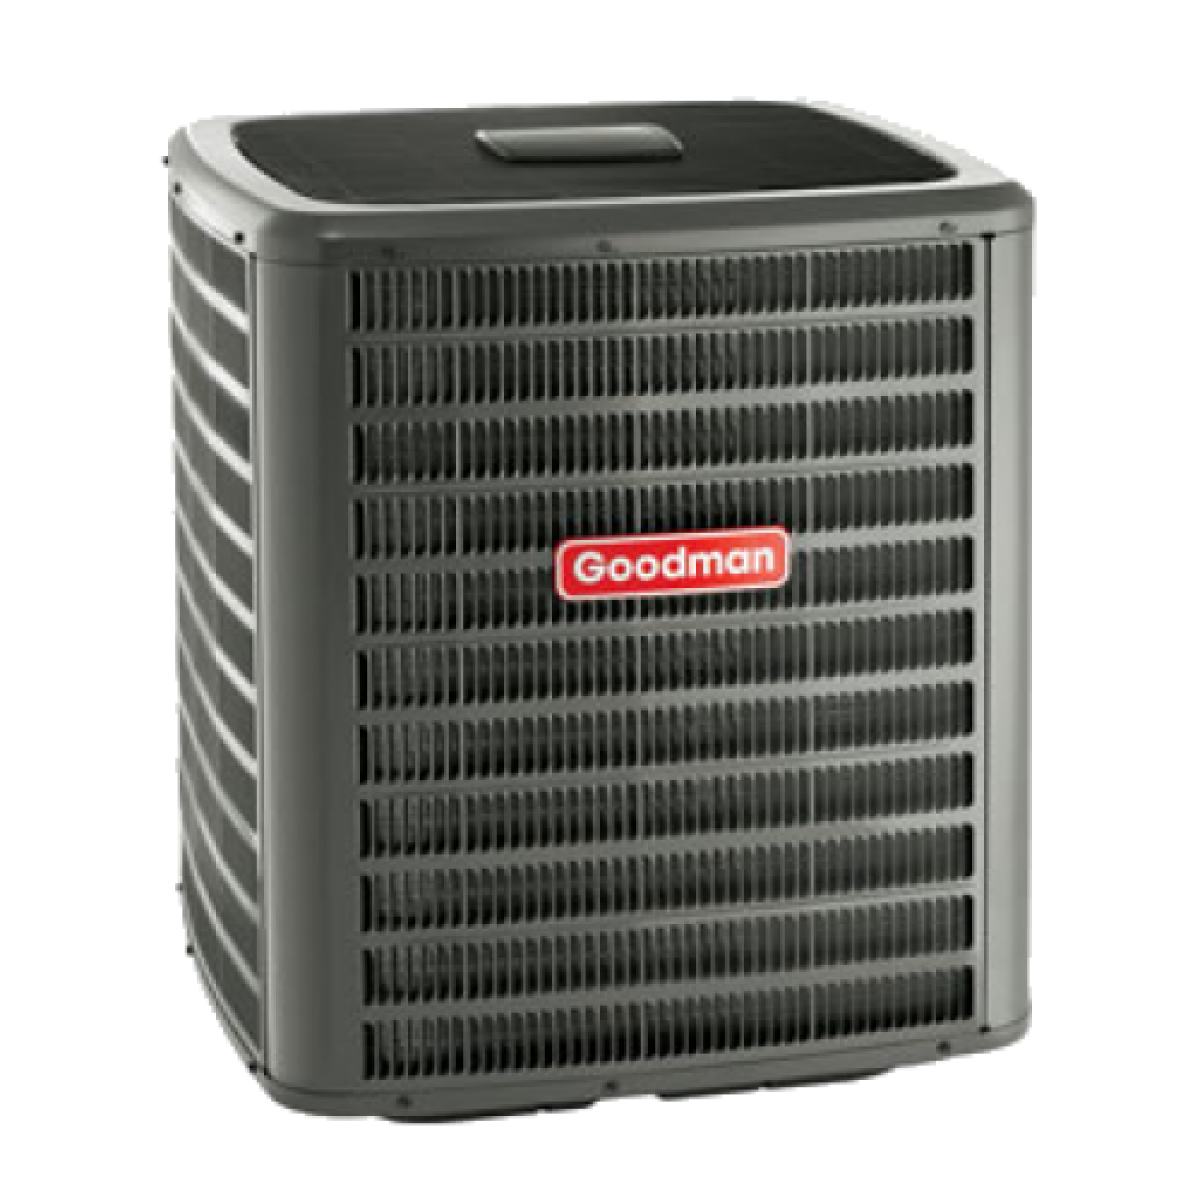 Goodman 3 5 Ton 14 Seer Heat Pump Split System